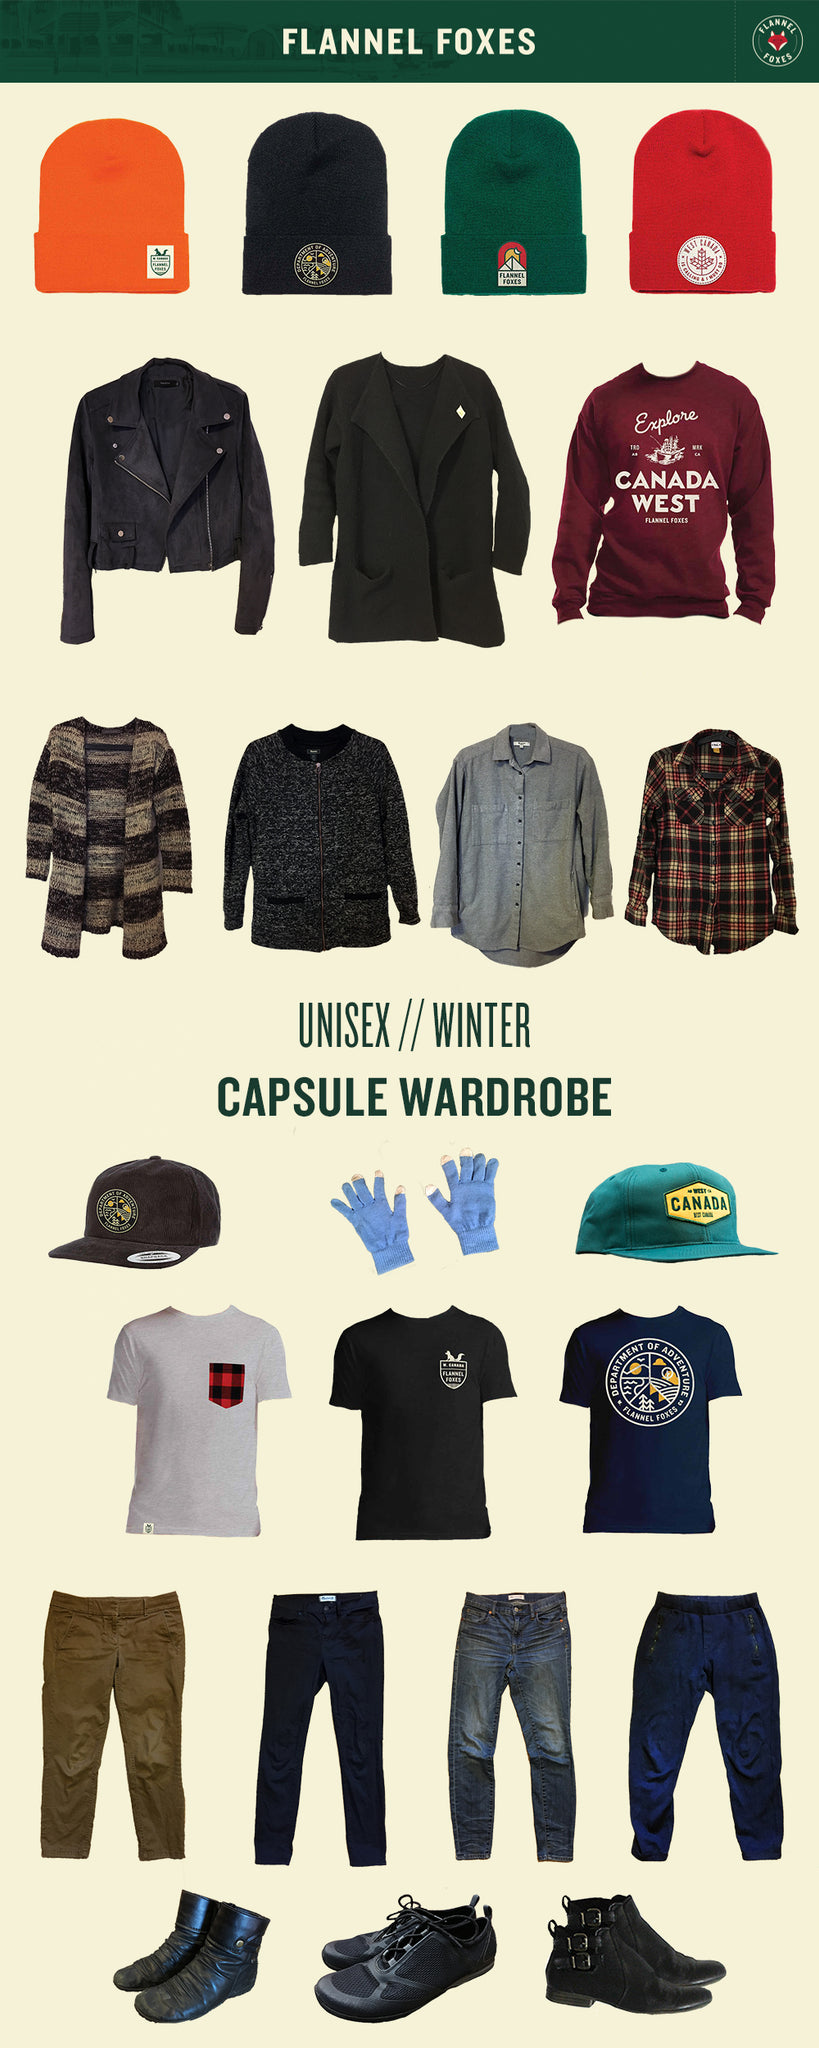 Unisex Winter Capsule Wardrobe